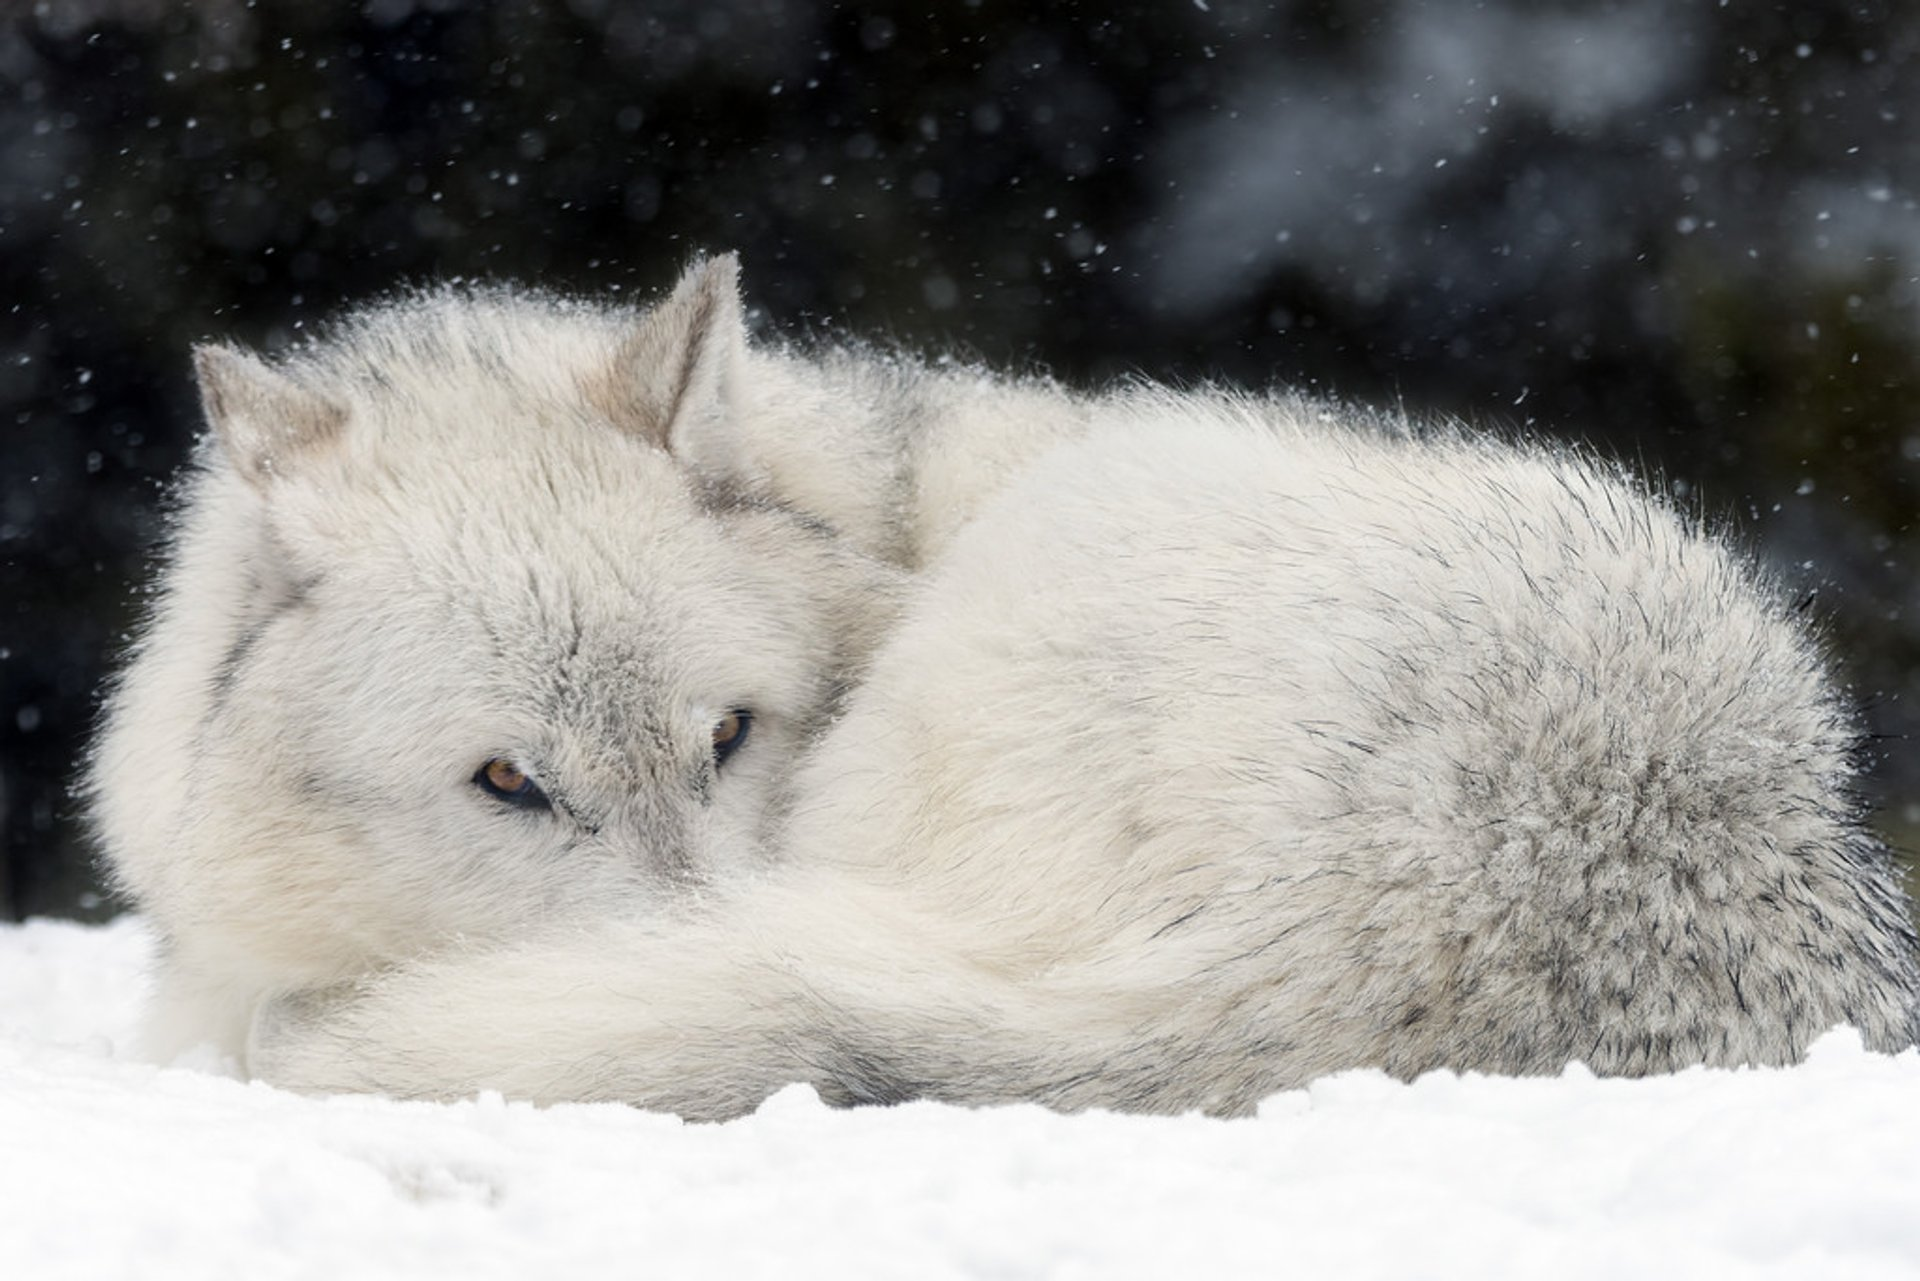 Wolves in Yellowstone National Park - Best Time